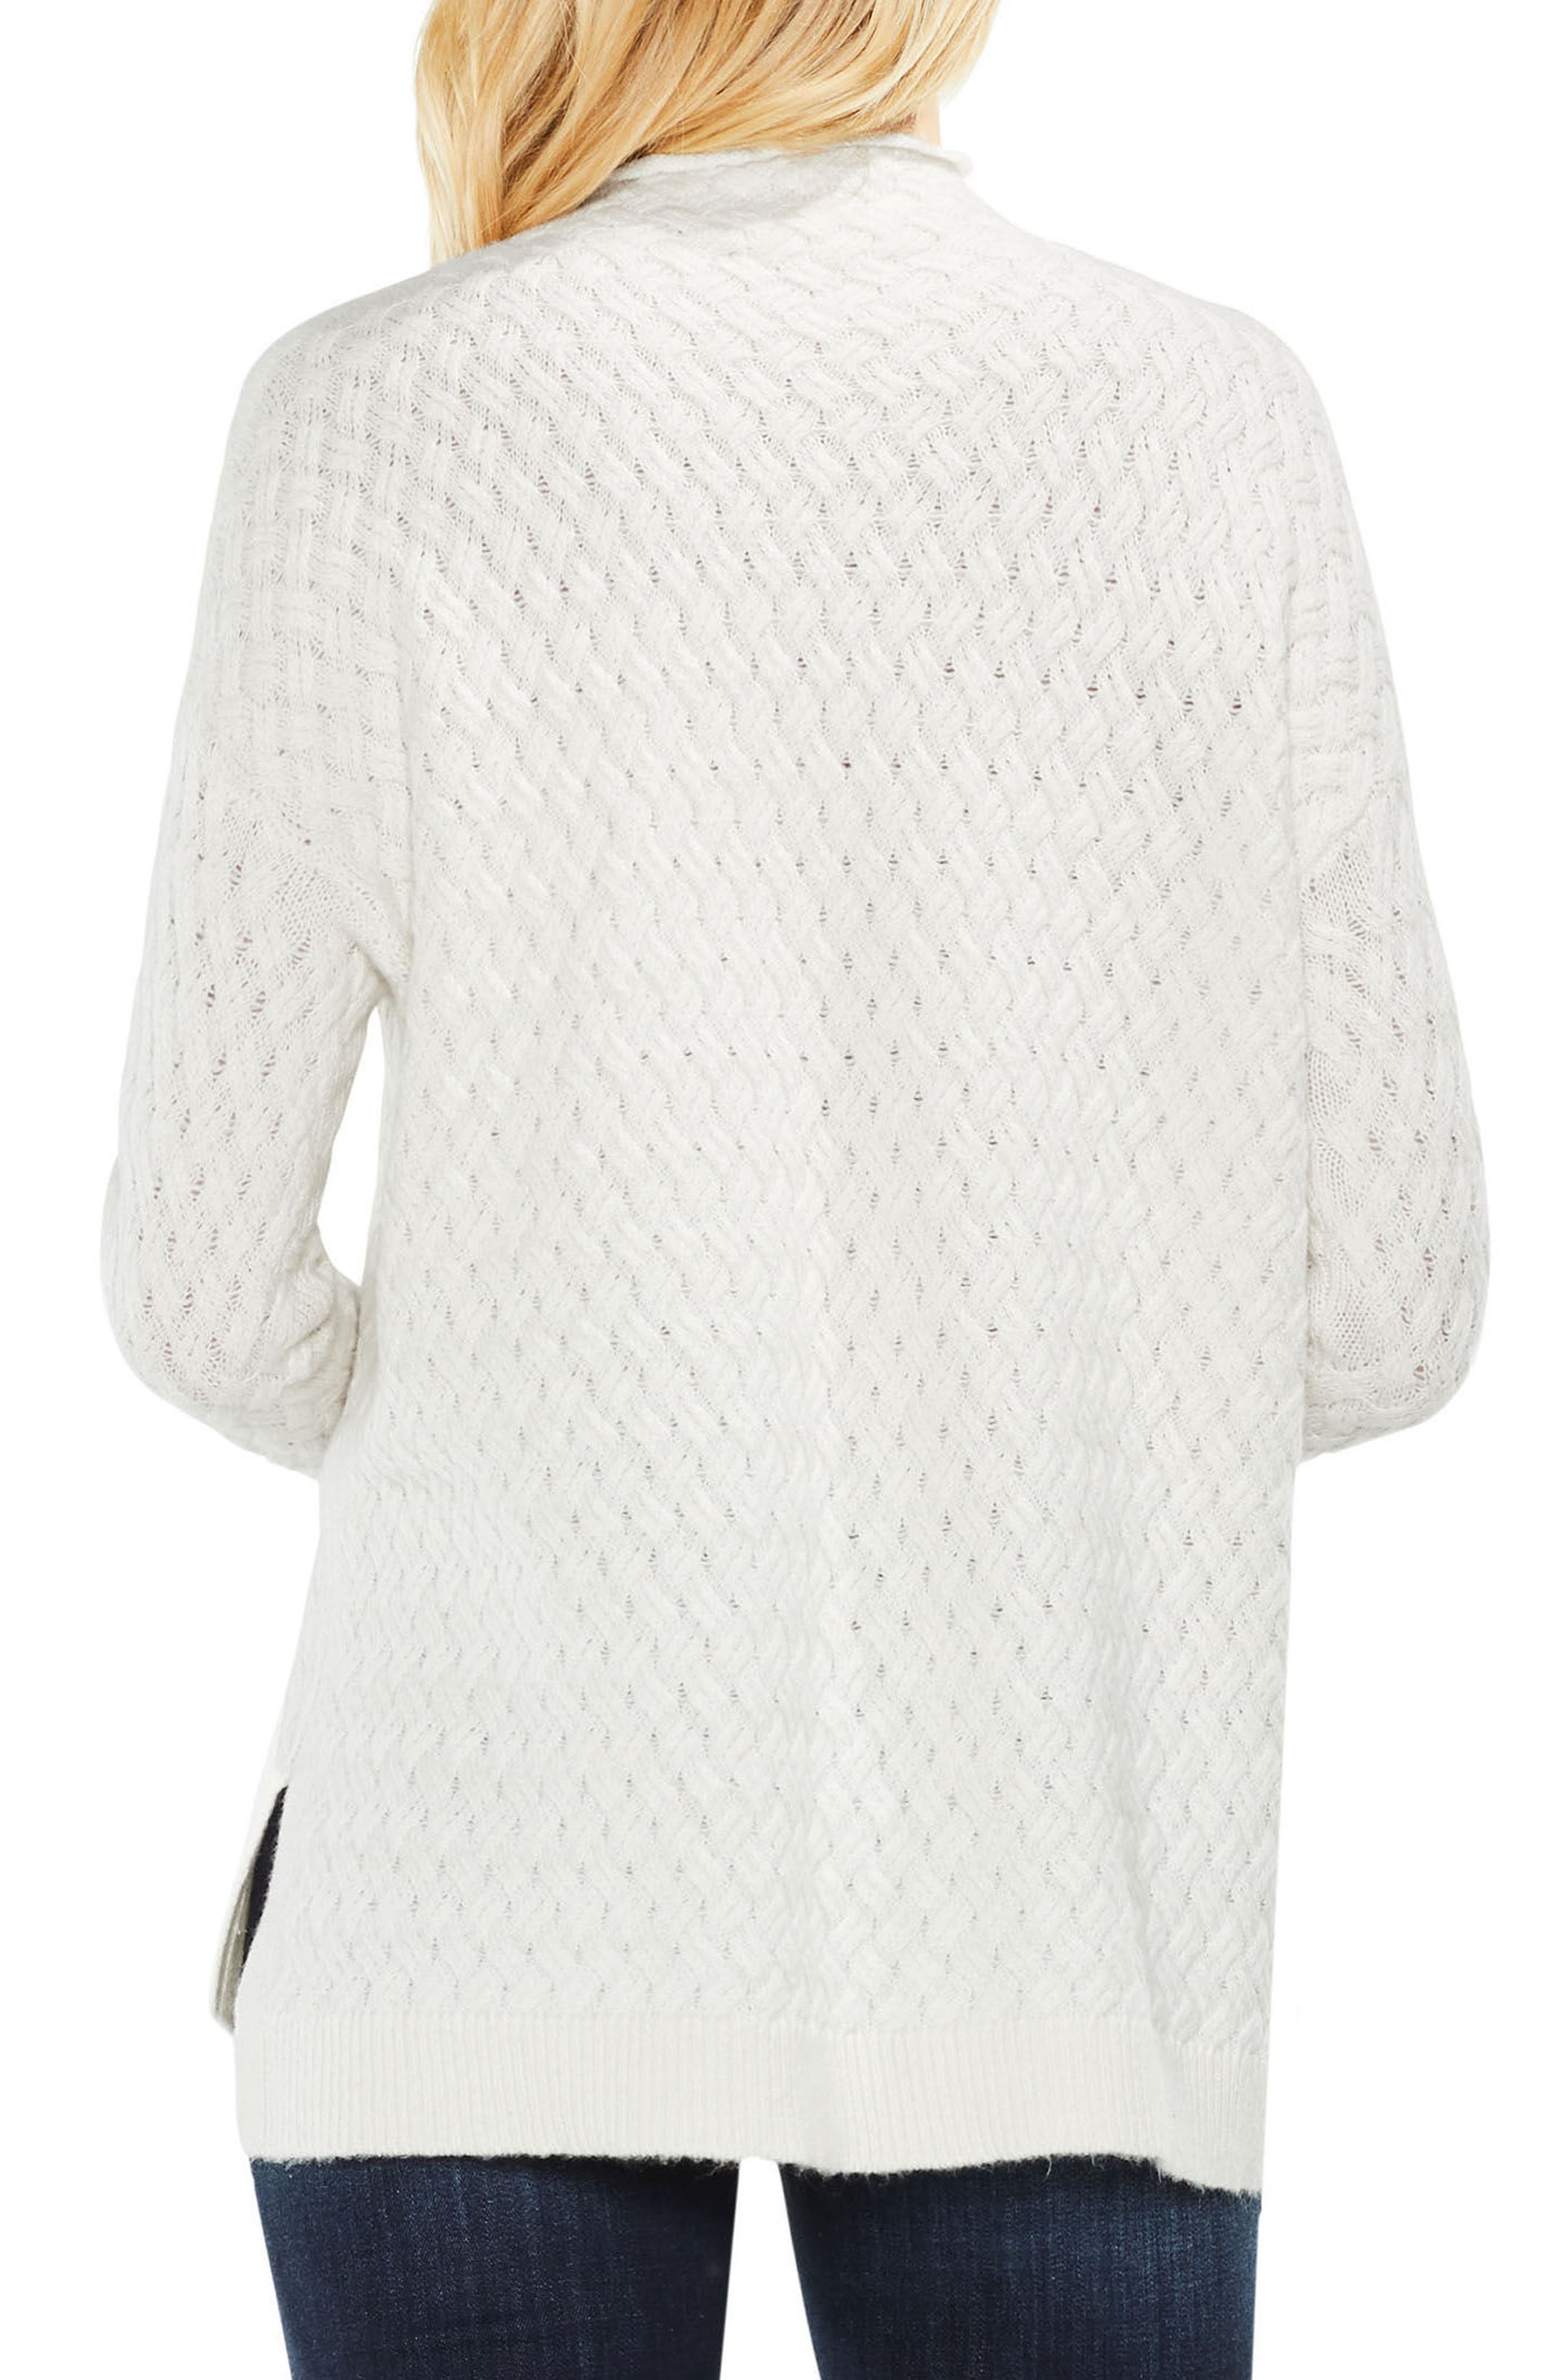 Alternate Image 2  - Two by Vince Camuto Cable Mock Neck Sweater (Regular & Petite)